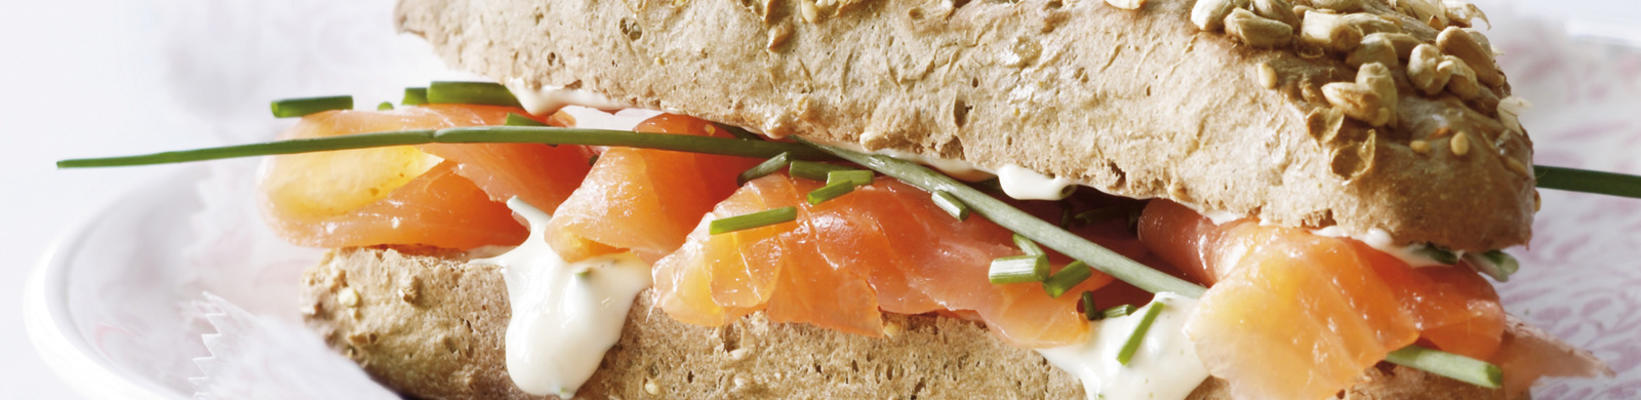 multigrain cereal with smoked salmon and orange mayonnaise